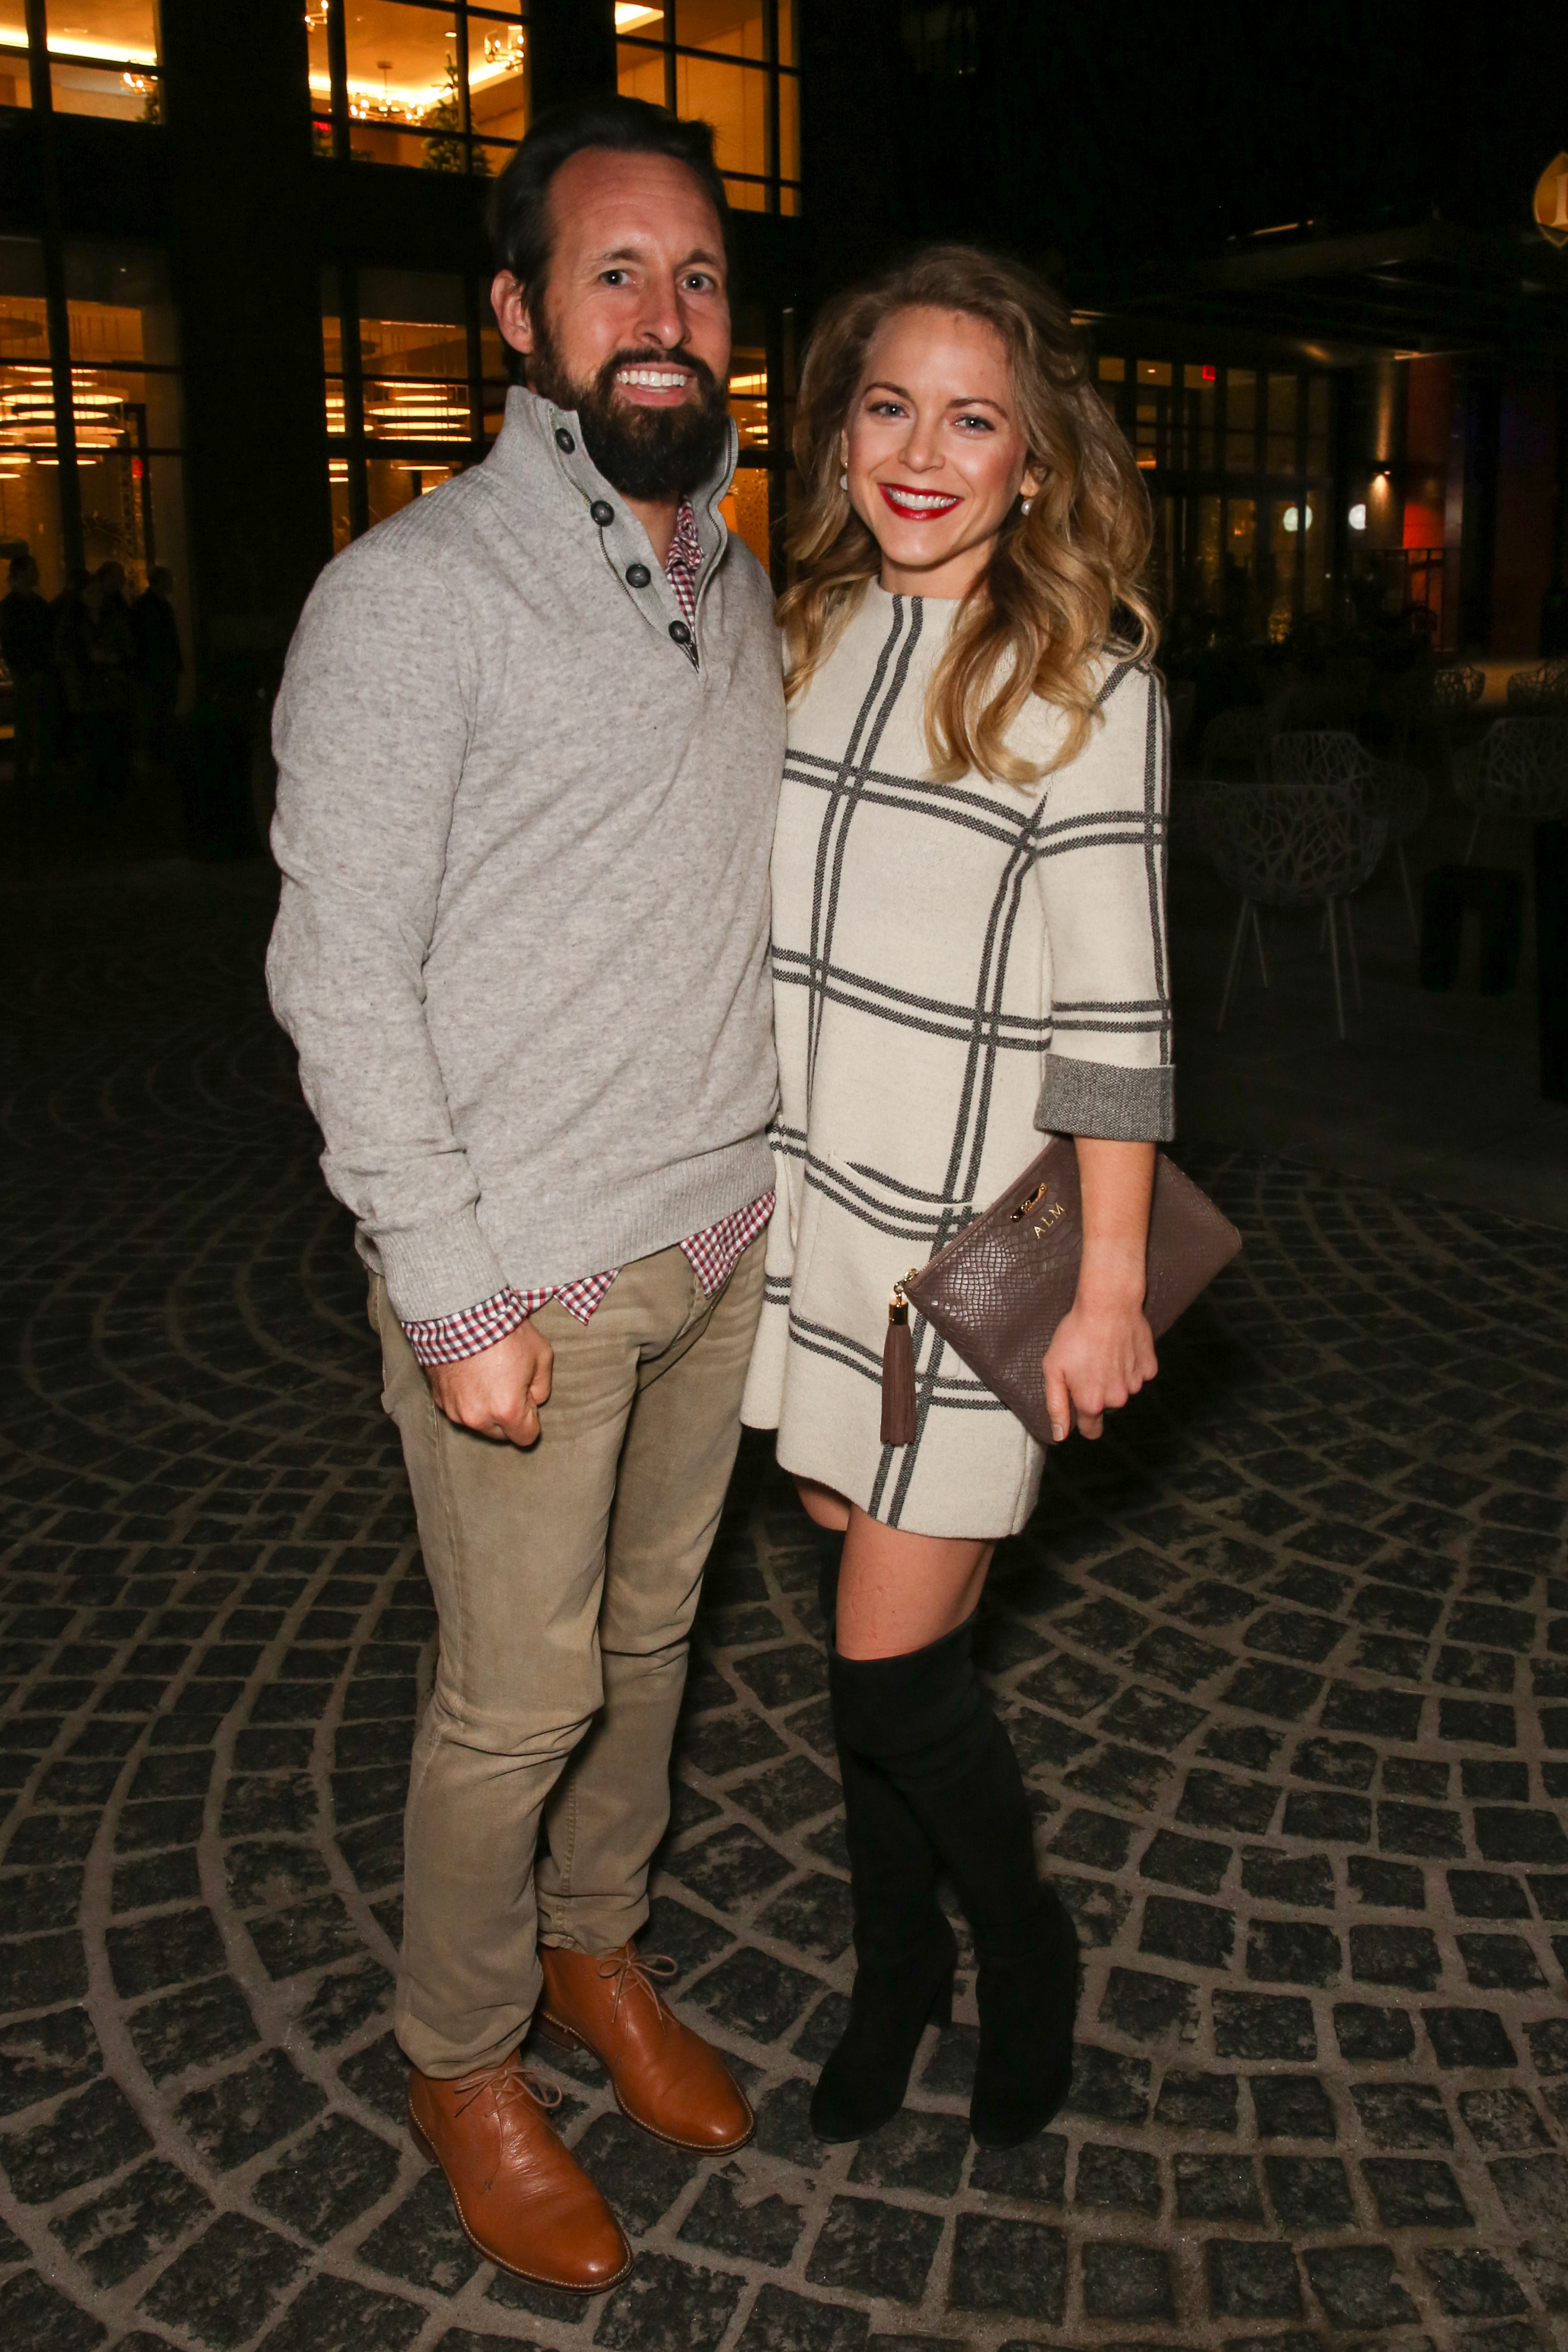 Allison Matthews and William Moore are perfectly coordinated for date night at The Wharf (Amanda Andrade-Rhoades/DC Refined)<p></p>